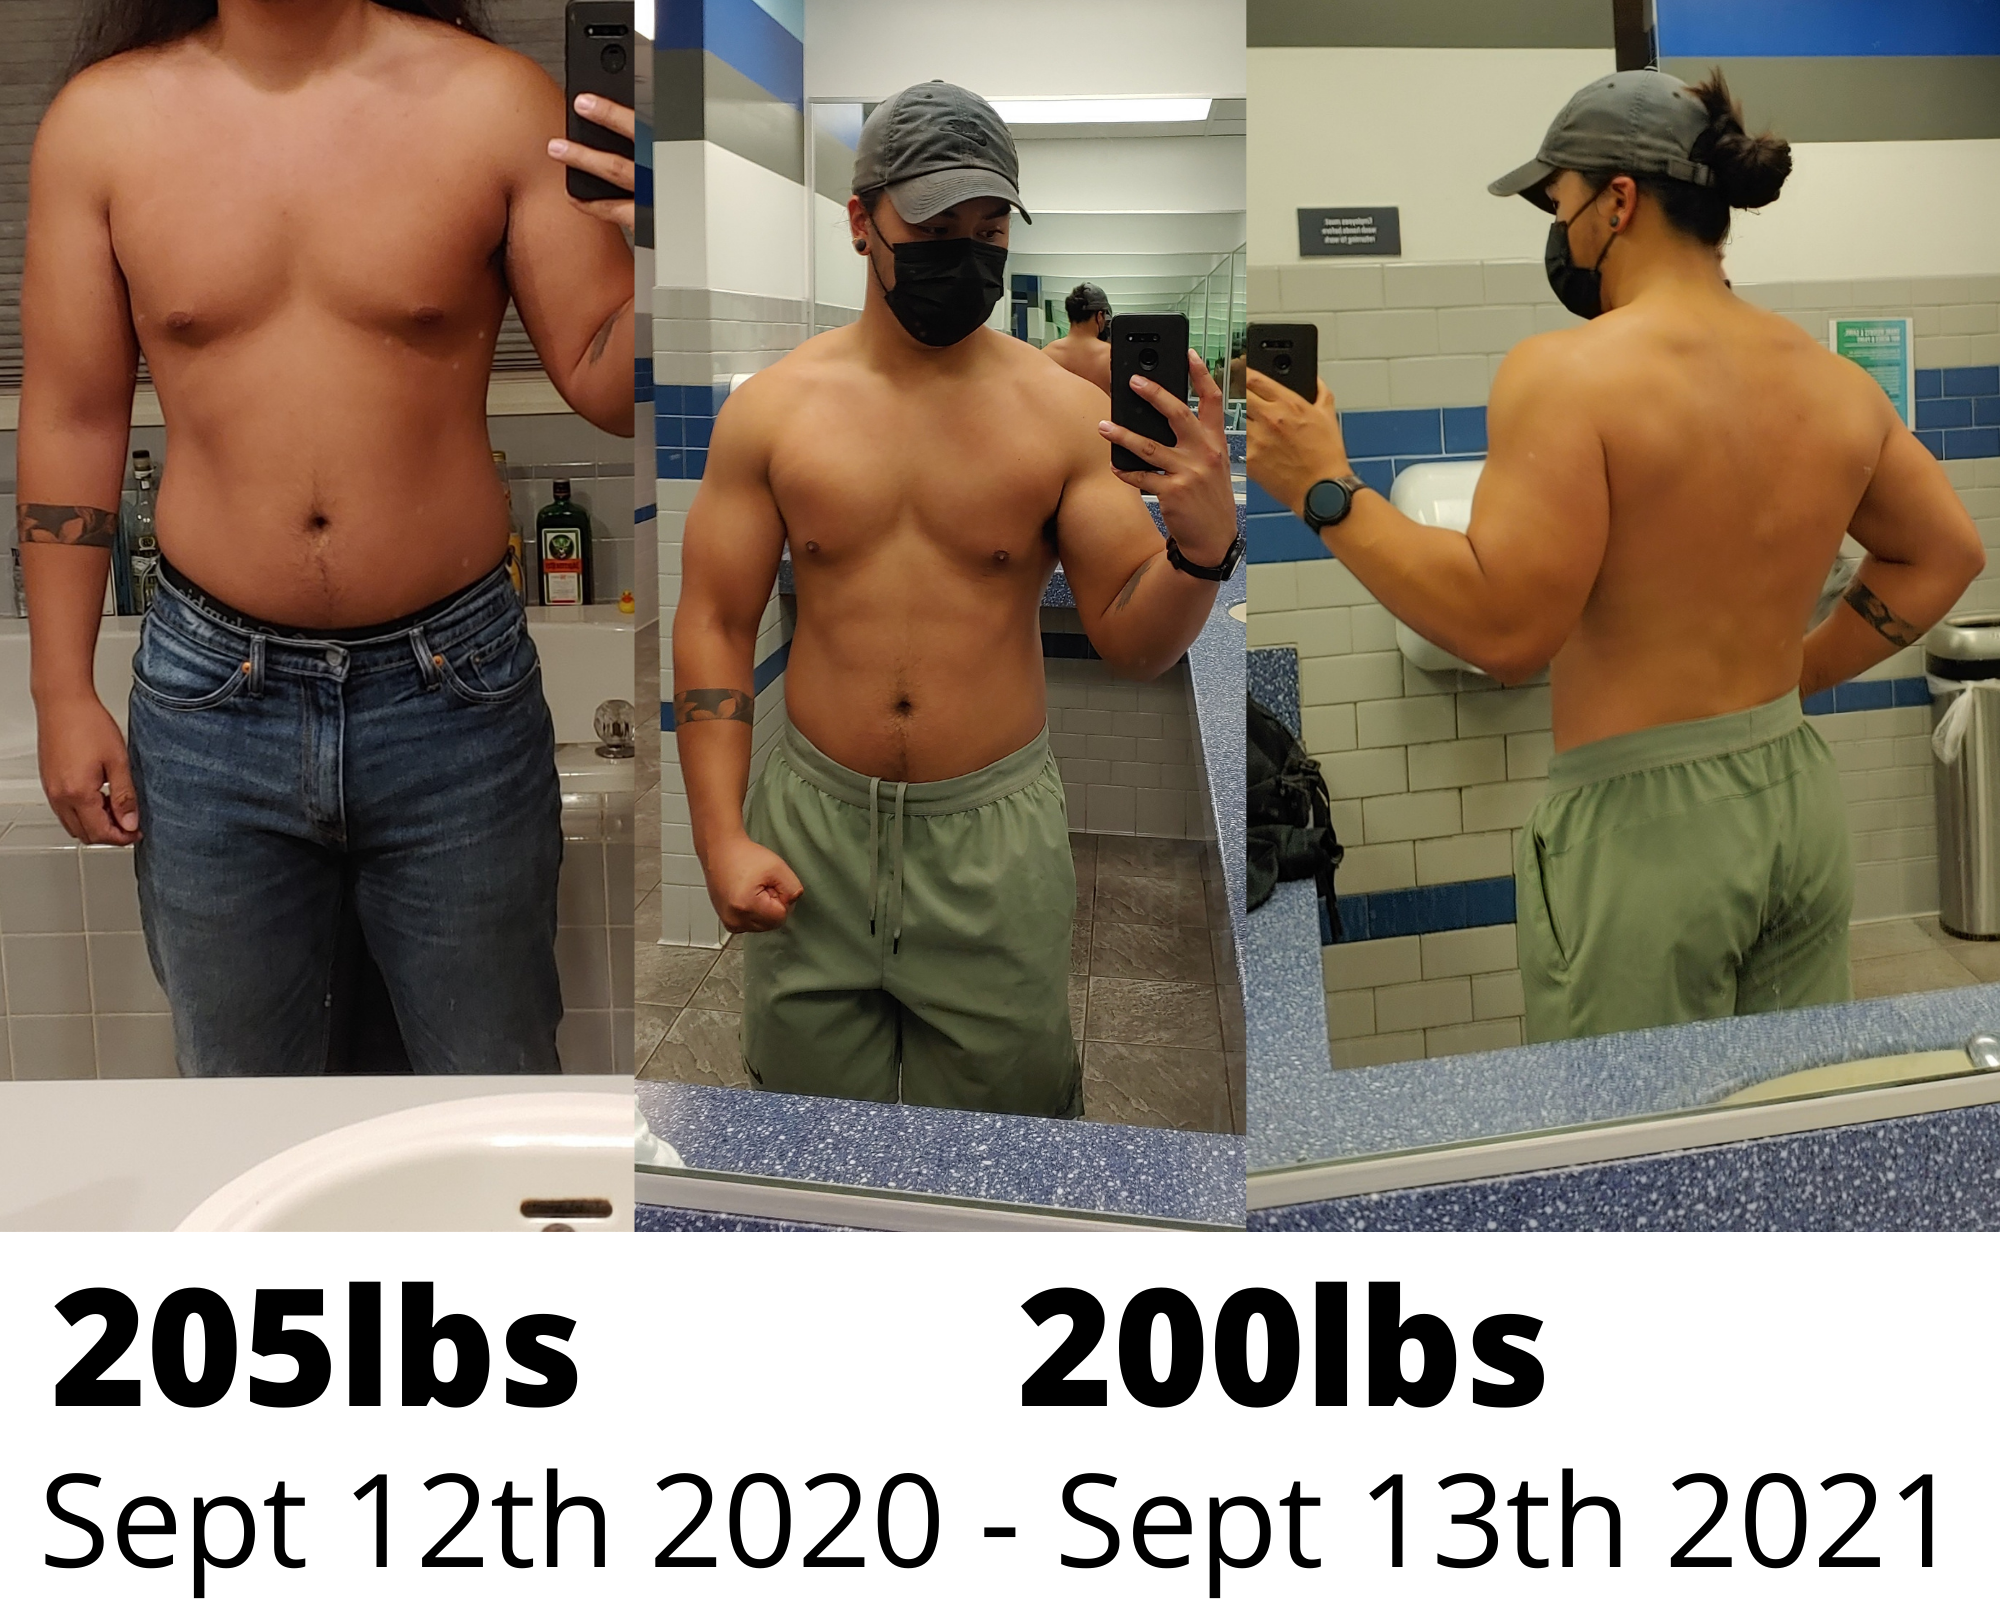 5'10 Male 5 lbs Weight Loss Before and After 205 lbs to 200 lbs